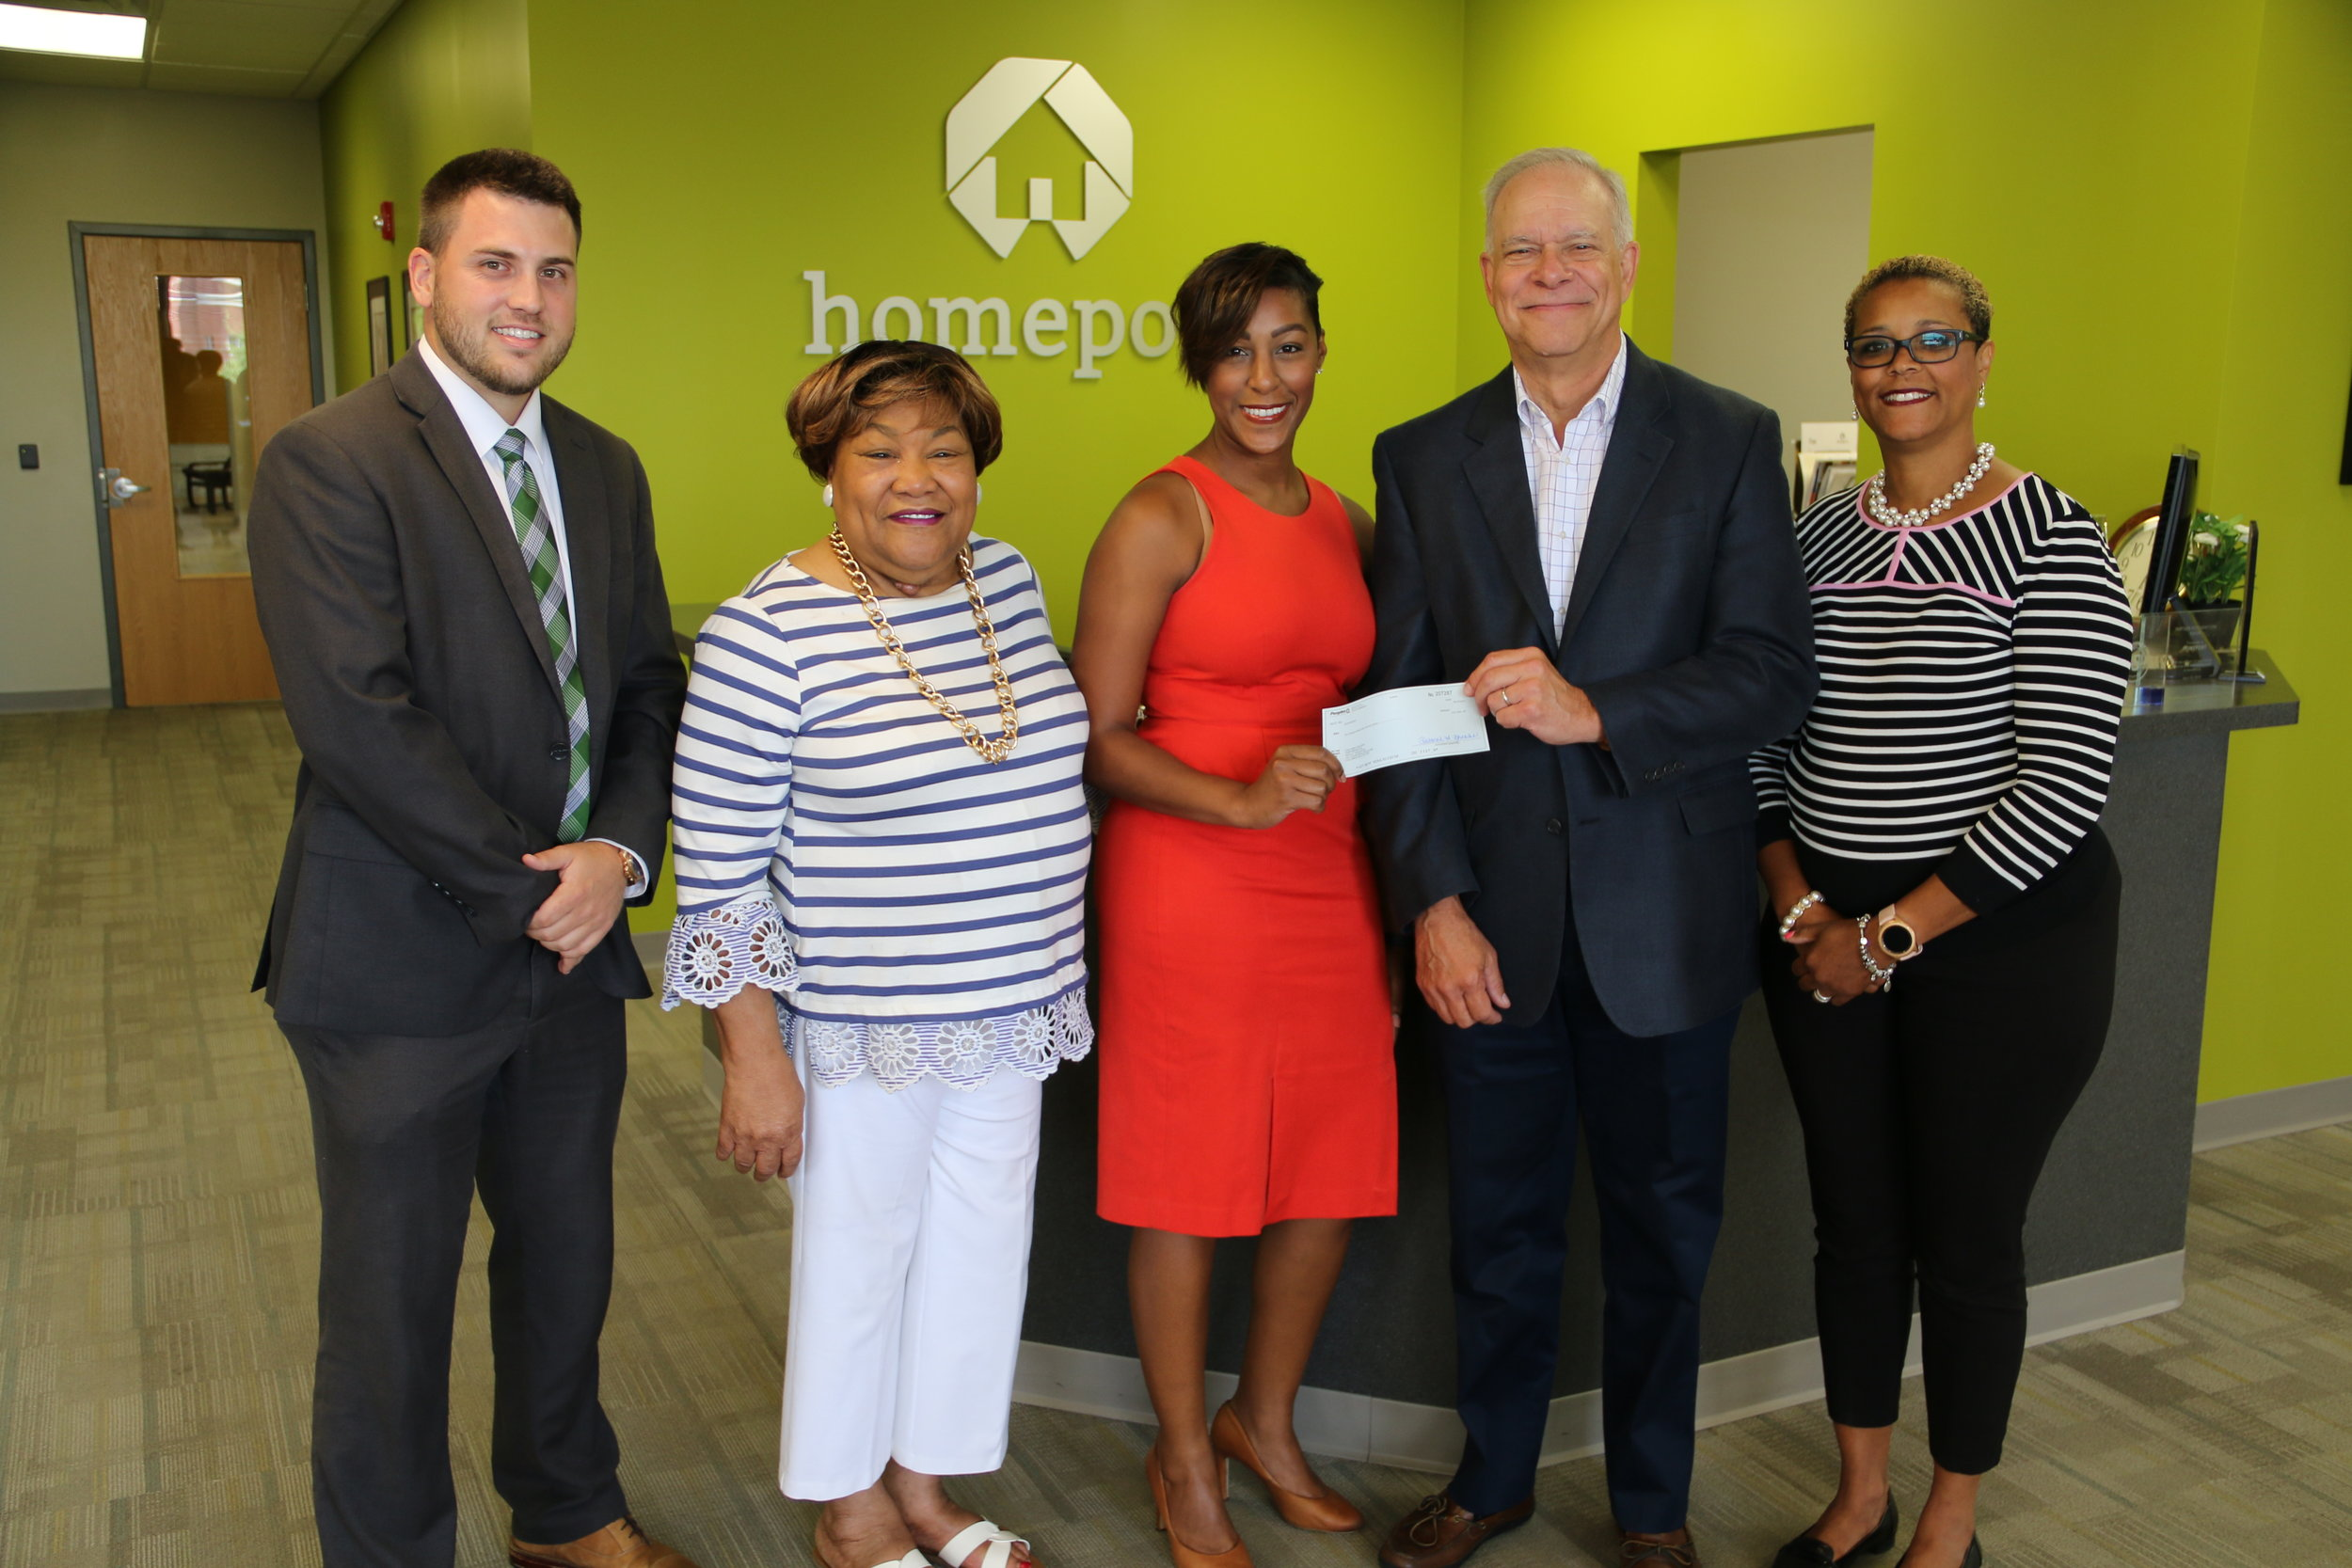 Peoples Bank Banker Justin Kidd, left, and Peoples Vice President Dawn Carpenter, center, presented Homeport with a $10,000 grant for homebuyer edcuation classes. Accepting the donation on behalf of Homeport were Maude Hill, Bruce Luecke and Laverne Price.